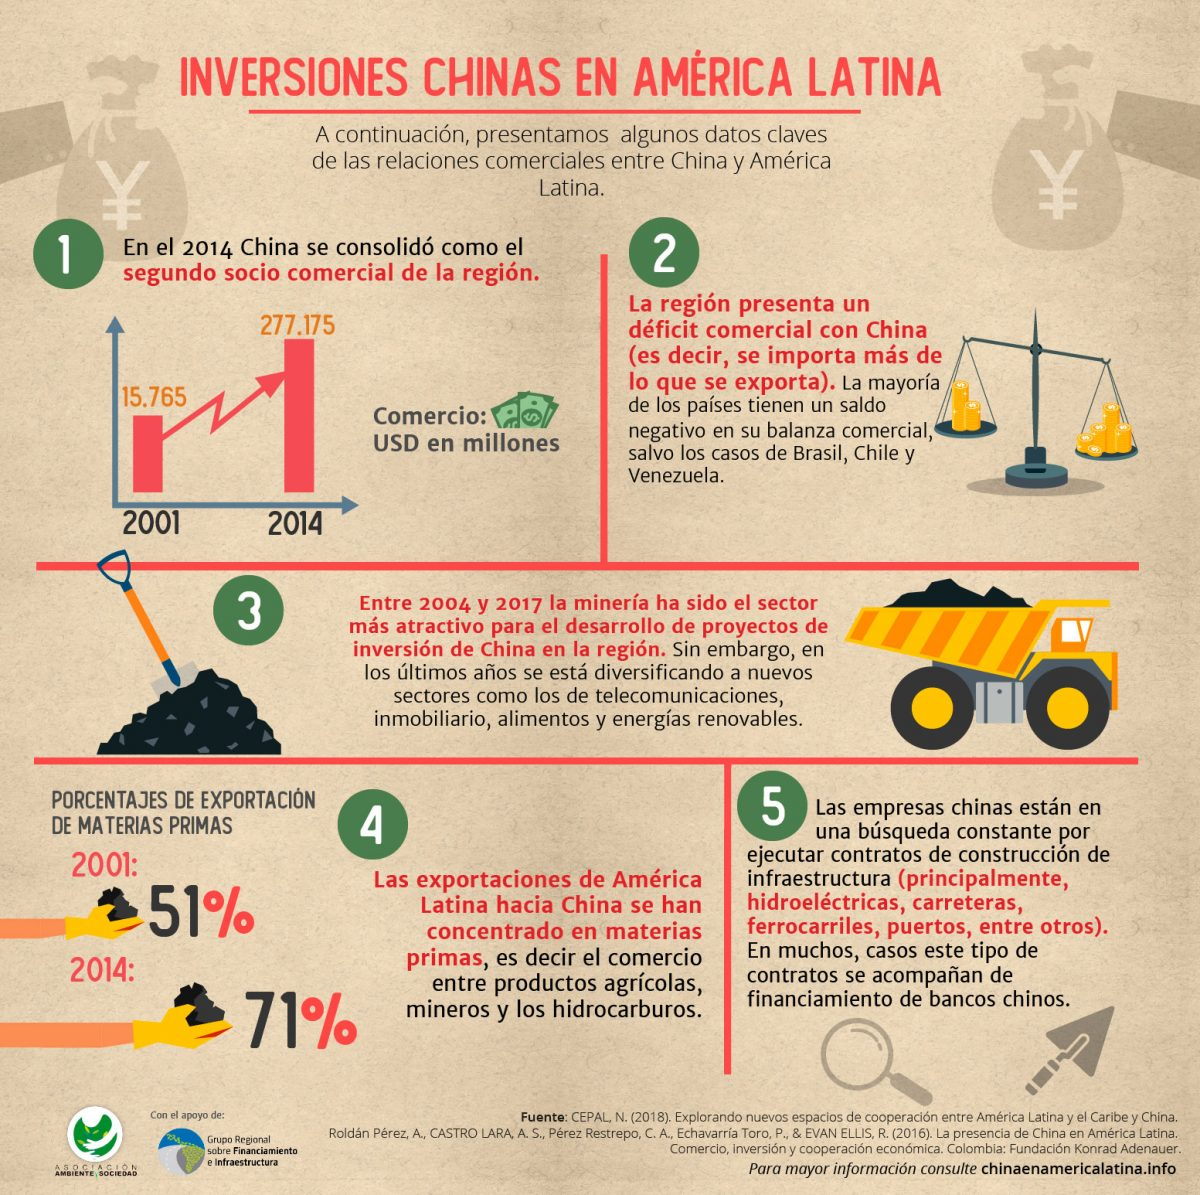 inversiones chinas